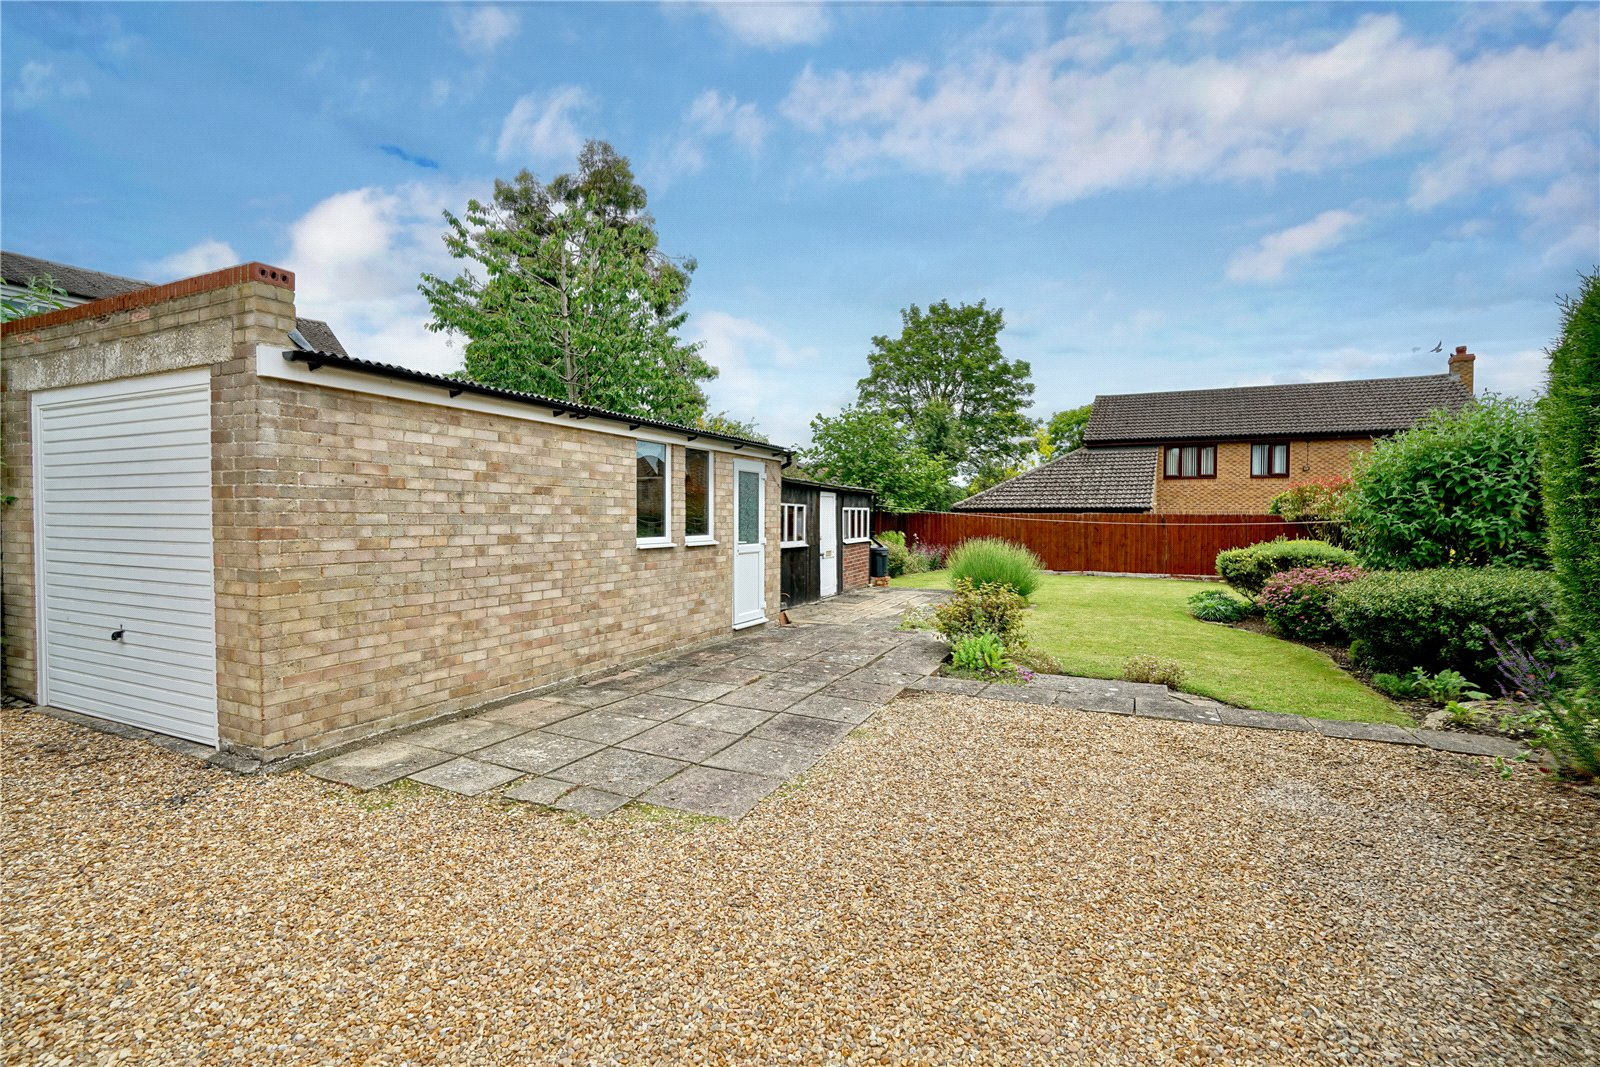 3 bed house for sale in Great North Road, Eaton Socon  - Property Image 9